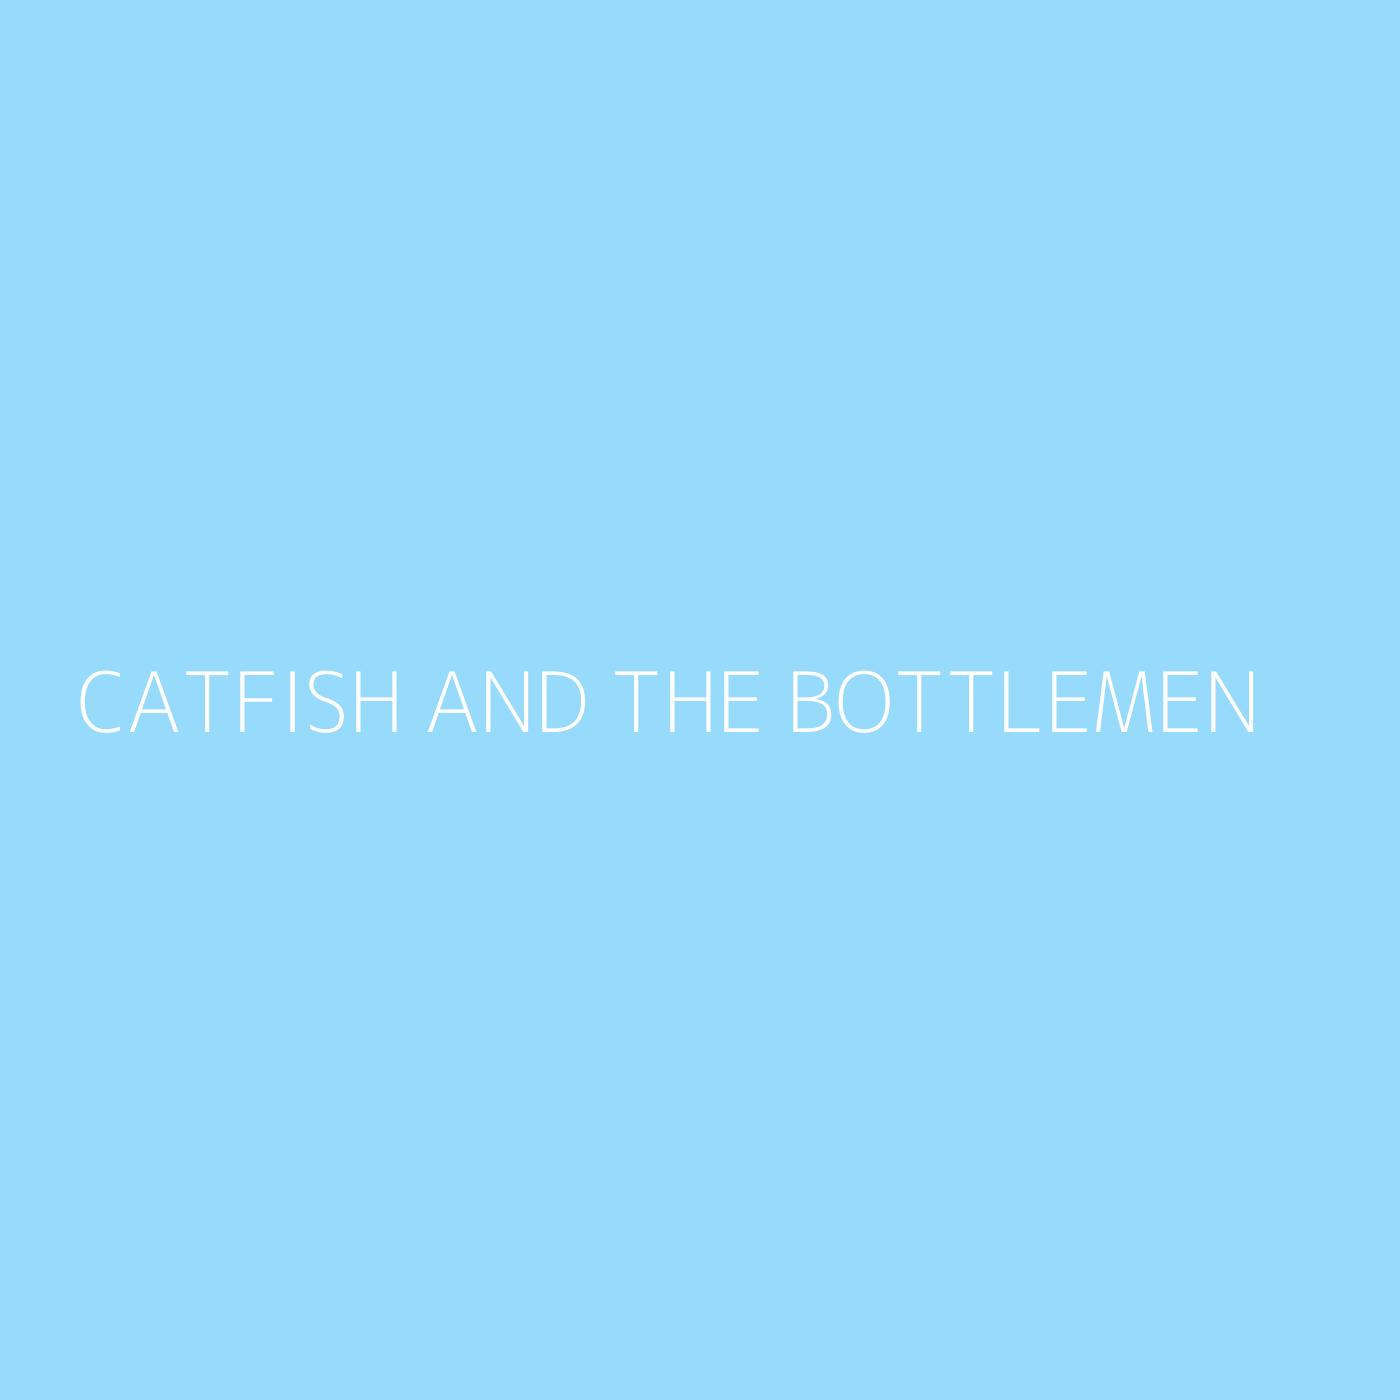 Catfish and the Bottlemen Playlist Artwork